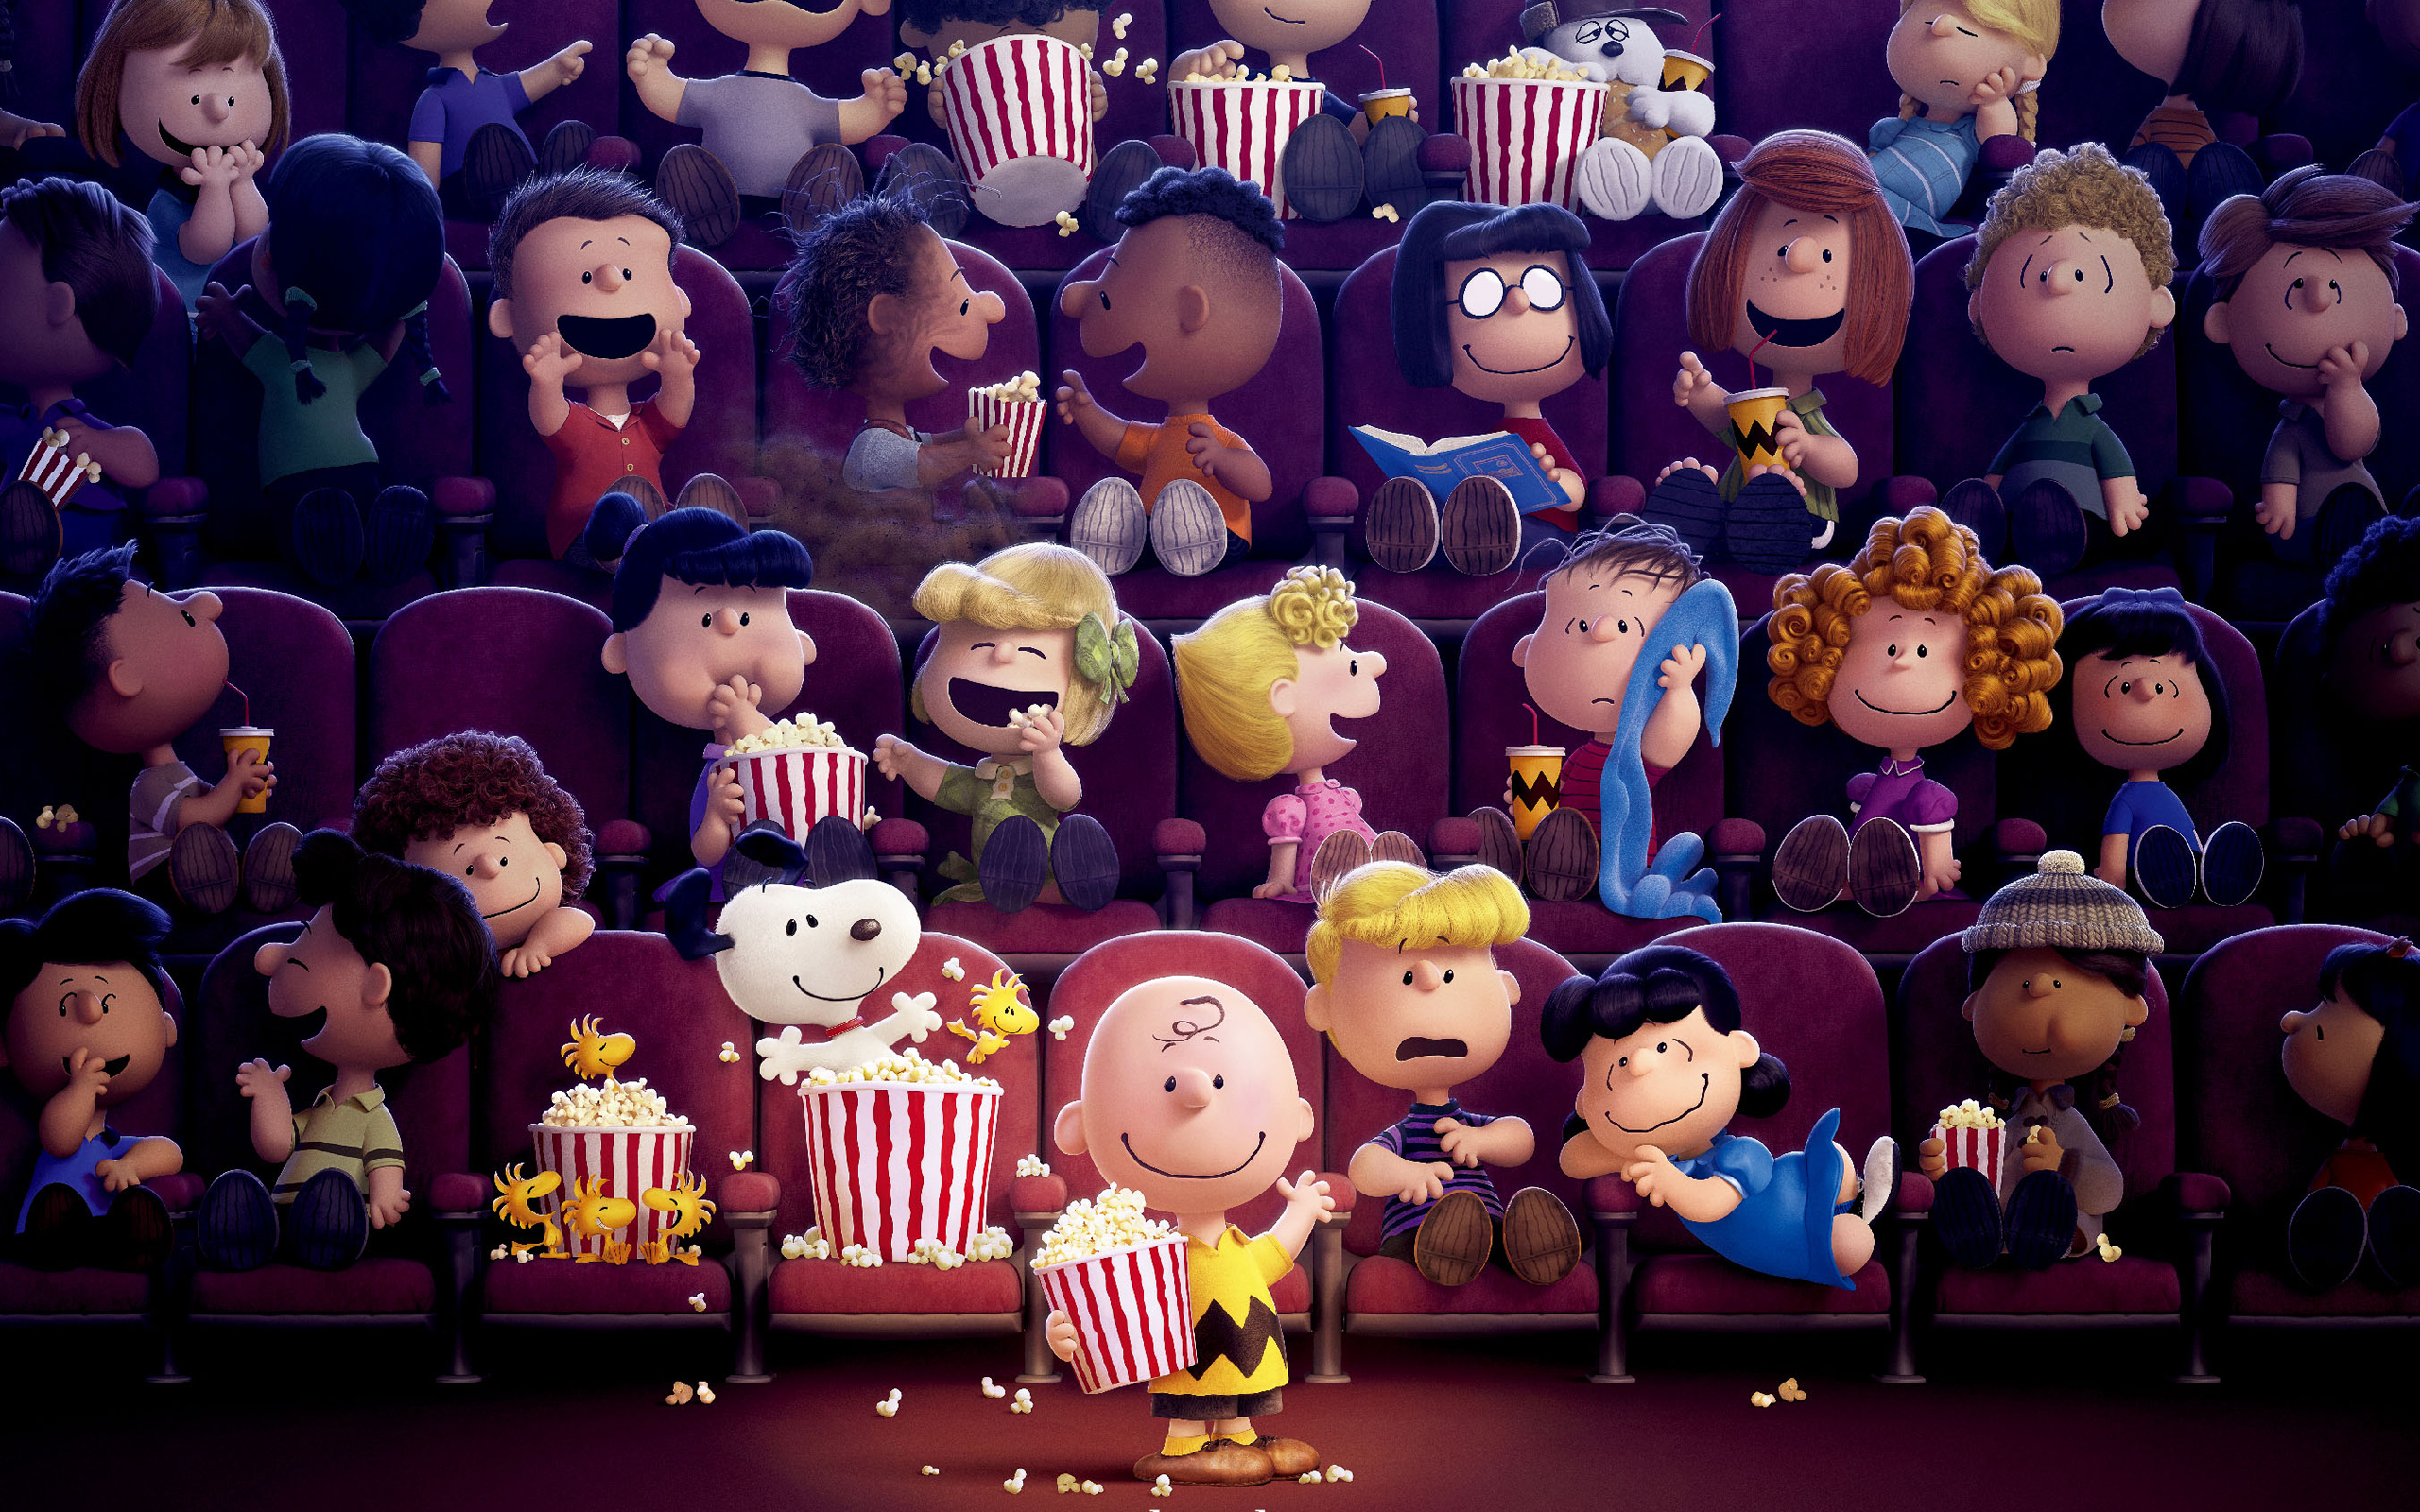 HD Wallpapers The Peanuts Movie